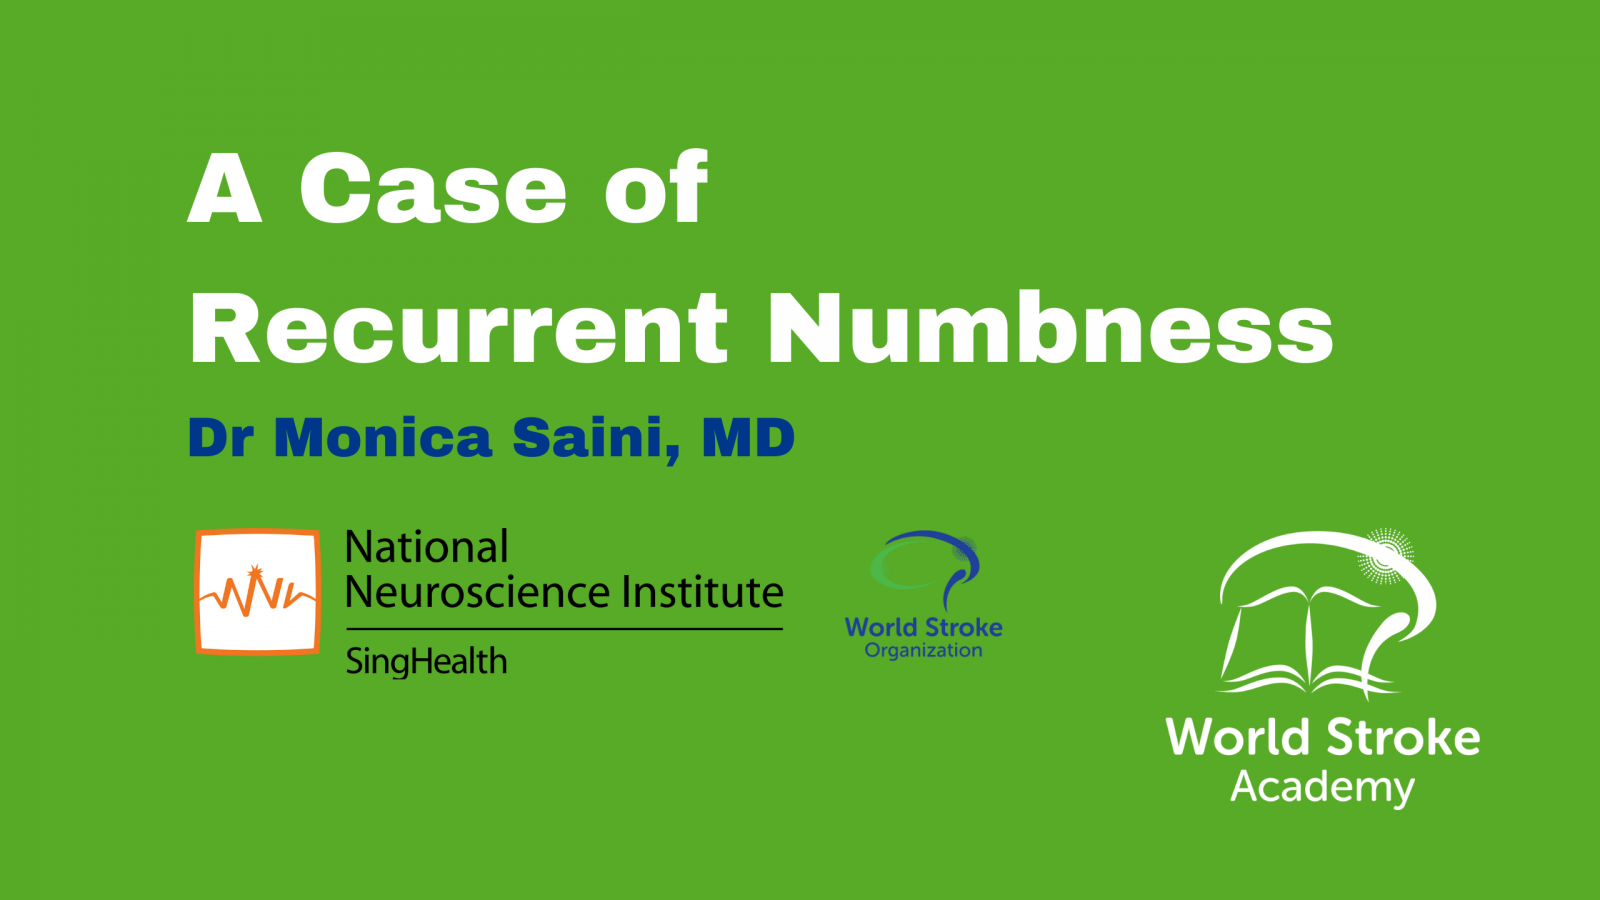 A Case of Recurrent Numbness